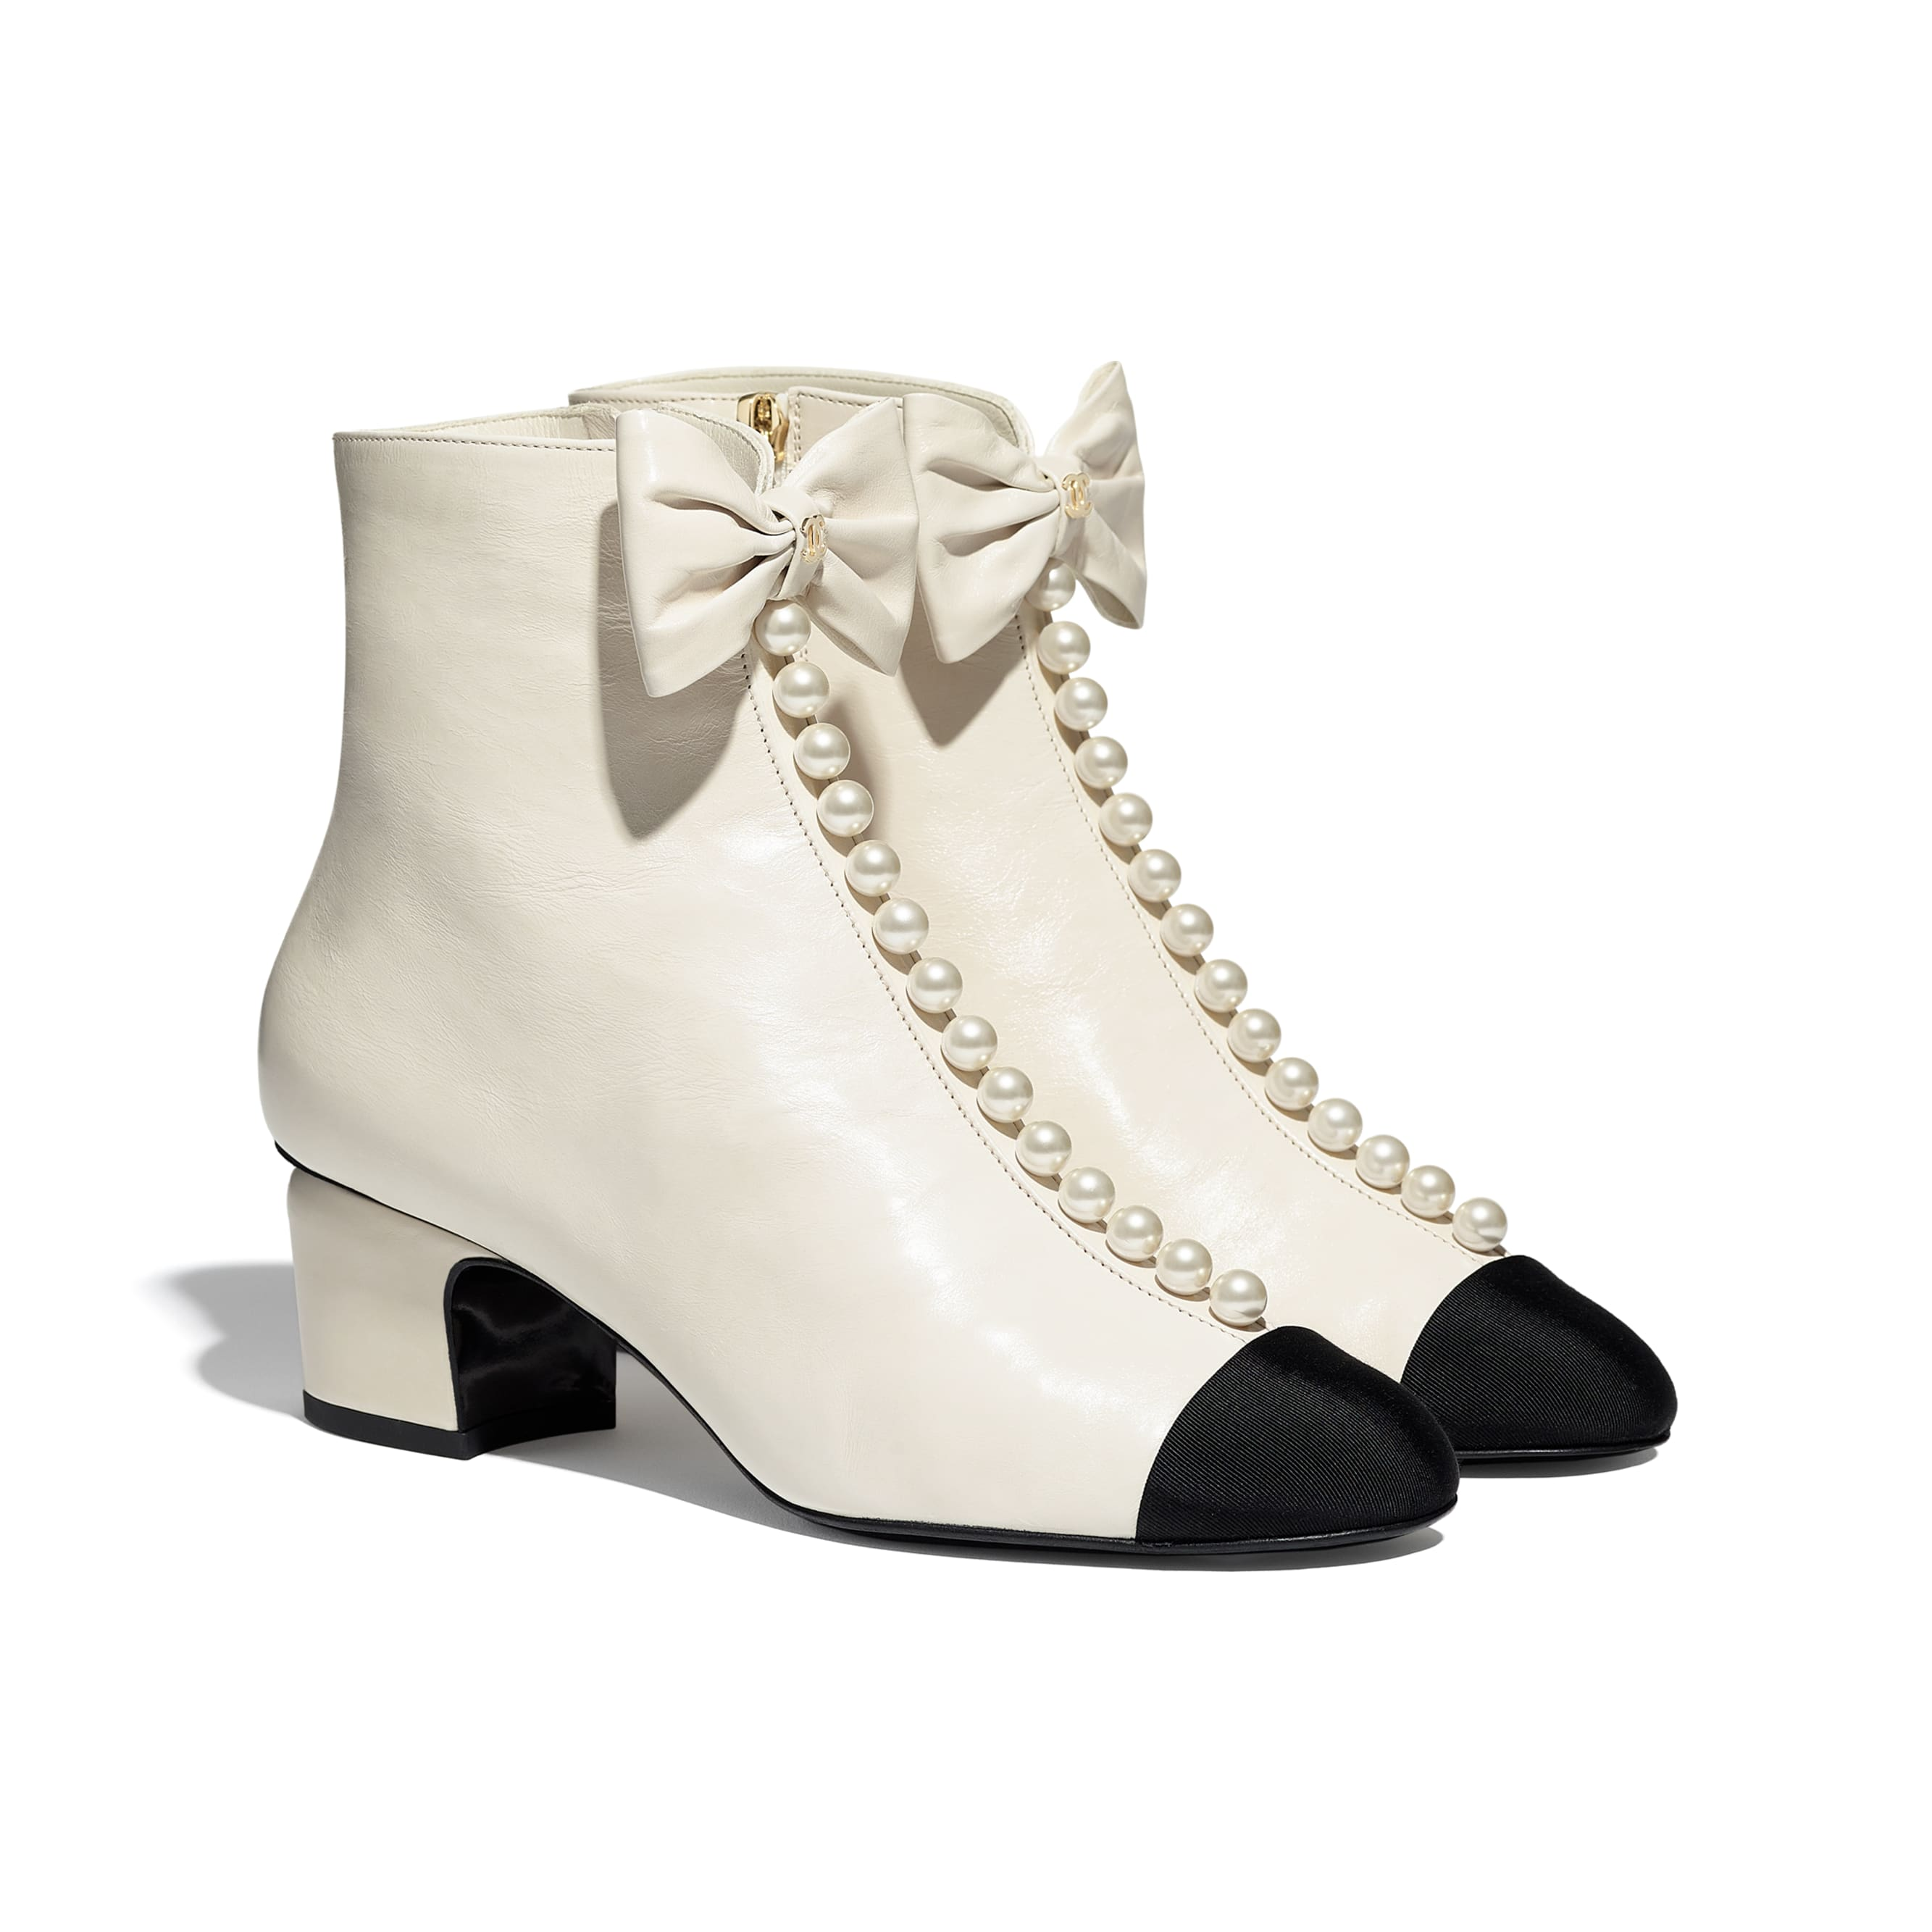 Ankle Boots - White & Black - Shiny Calfskin & Grosgrain  - CHANEL - Alternative view - see standard sized version